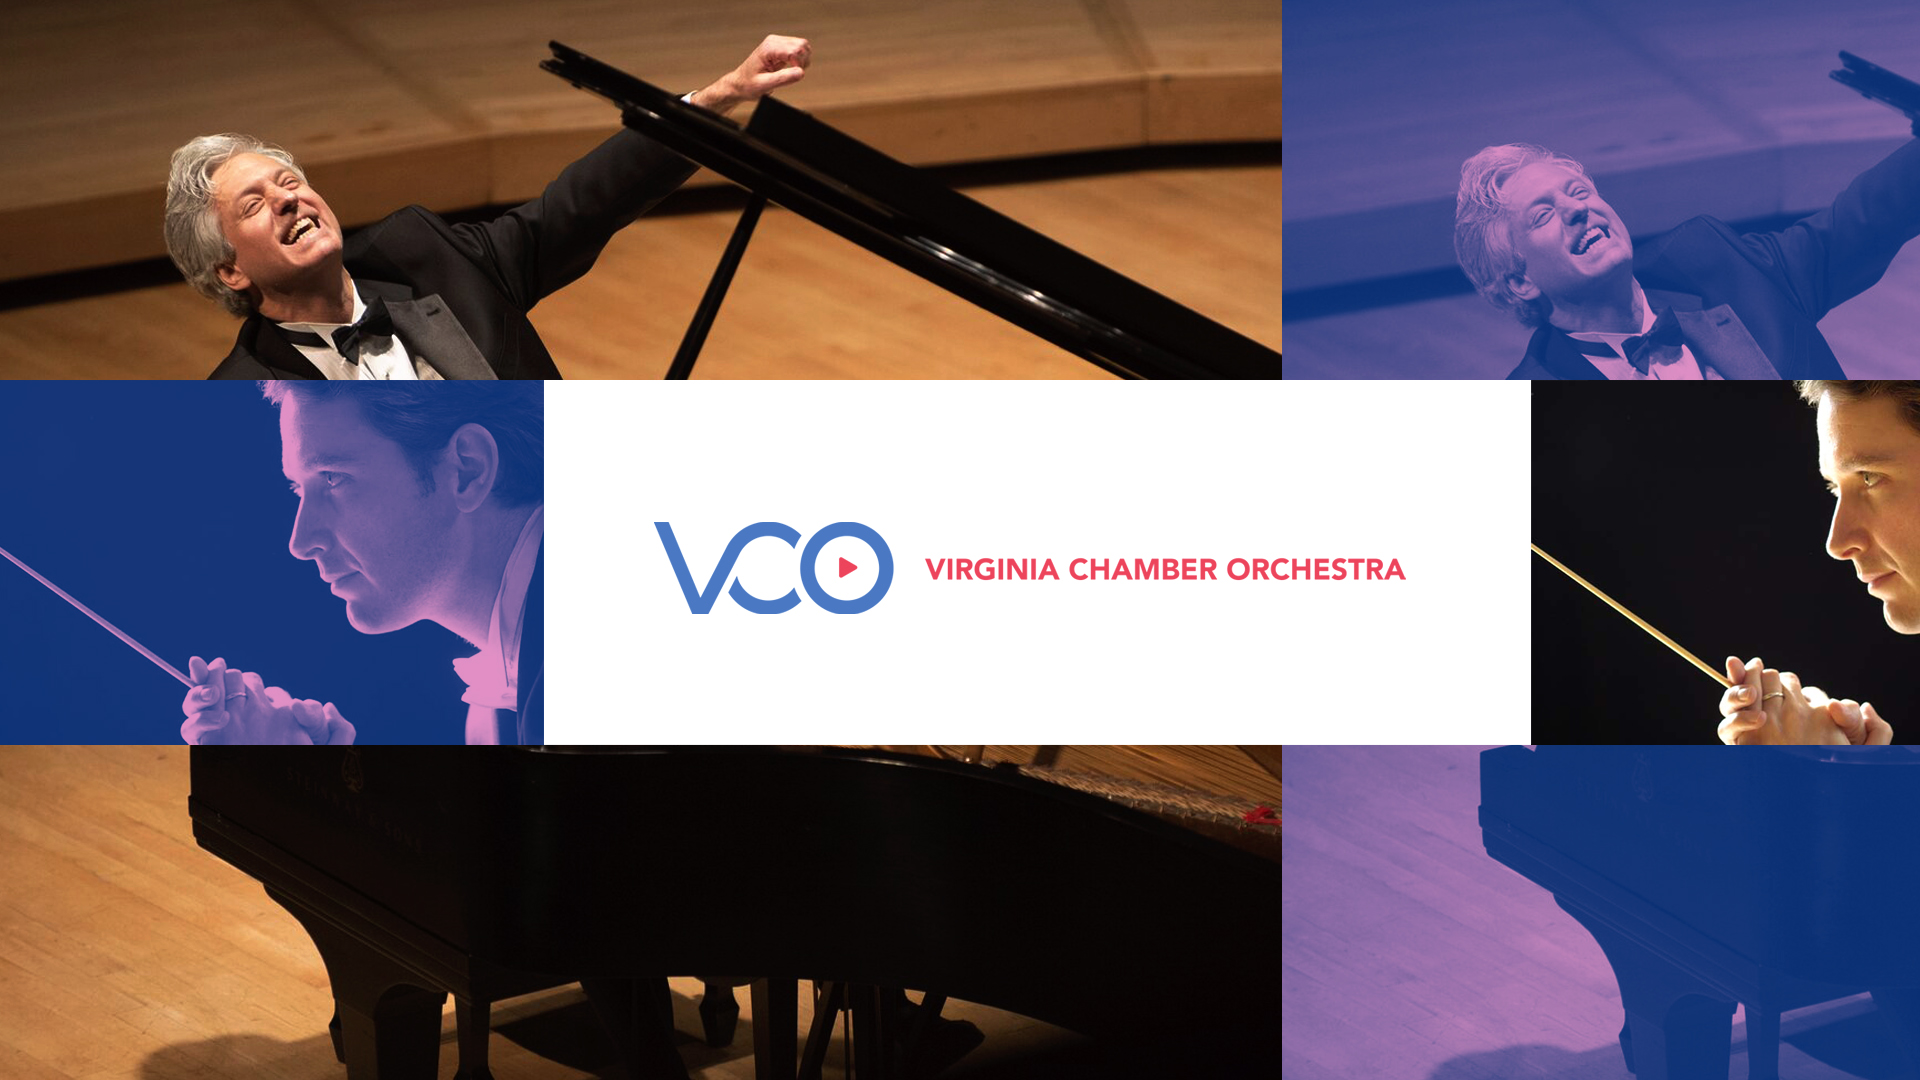 Virginia, chamber, virginia chamber orchestra, capital one hall, capital one center, things to do in DC, Tysons, orchestral, classical, italy